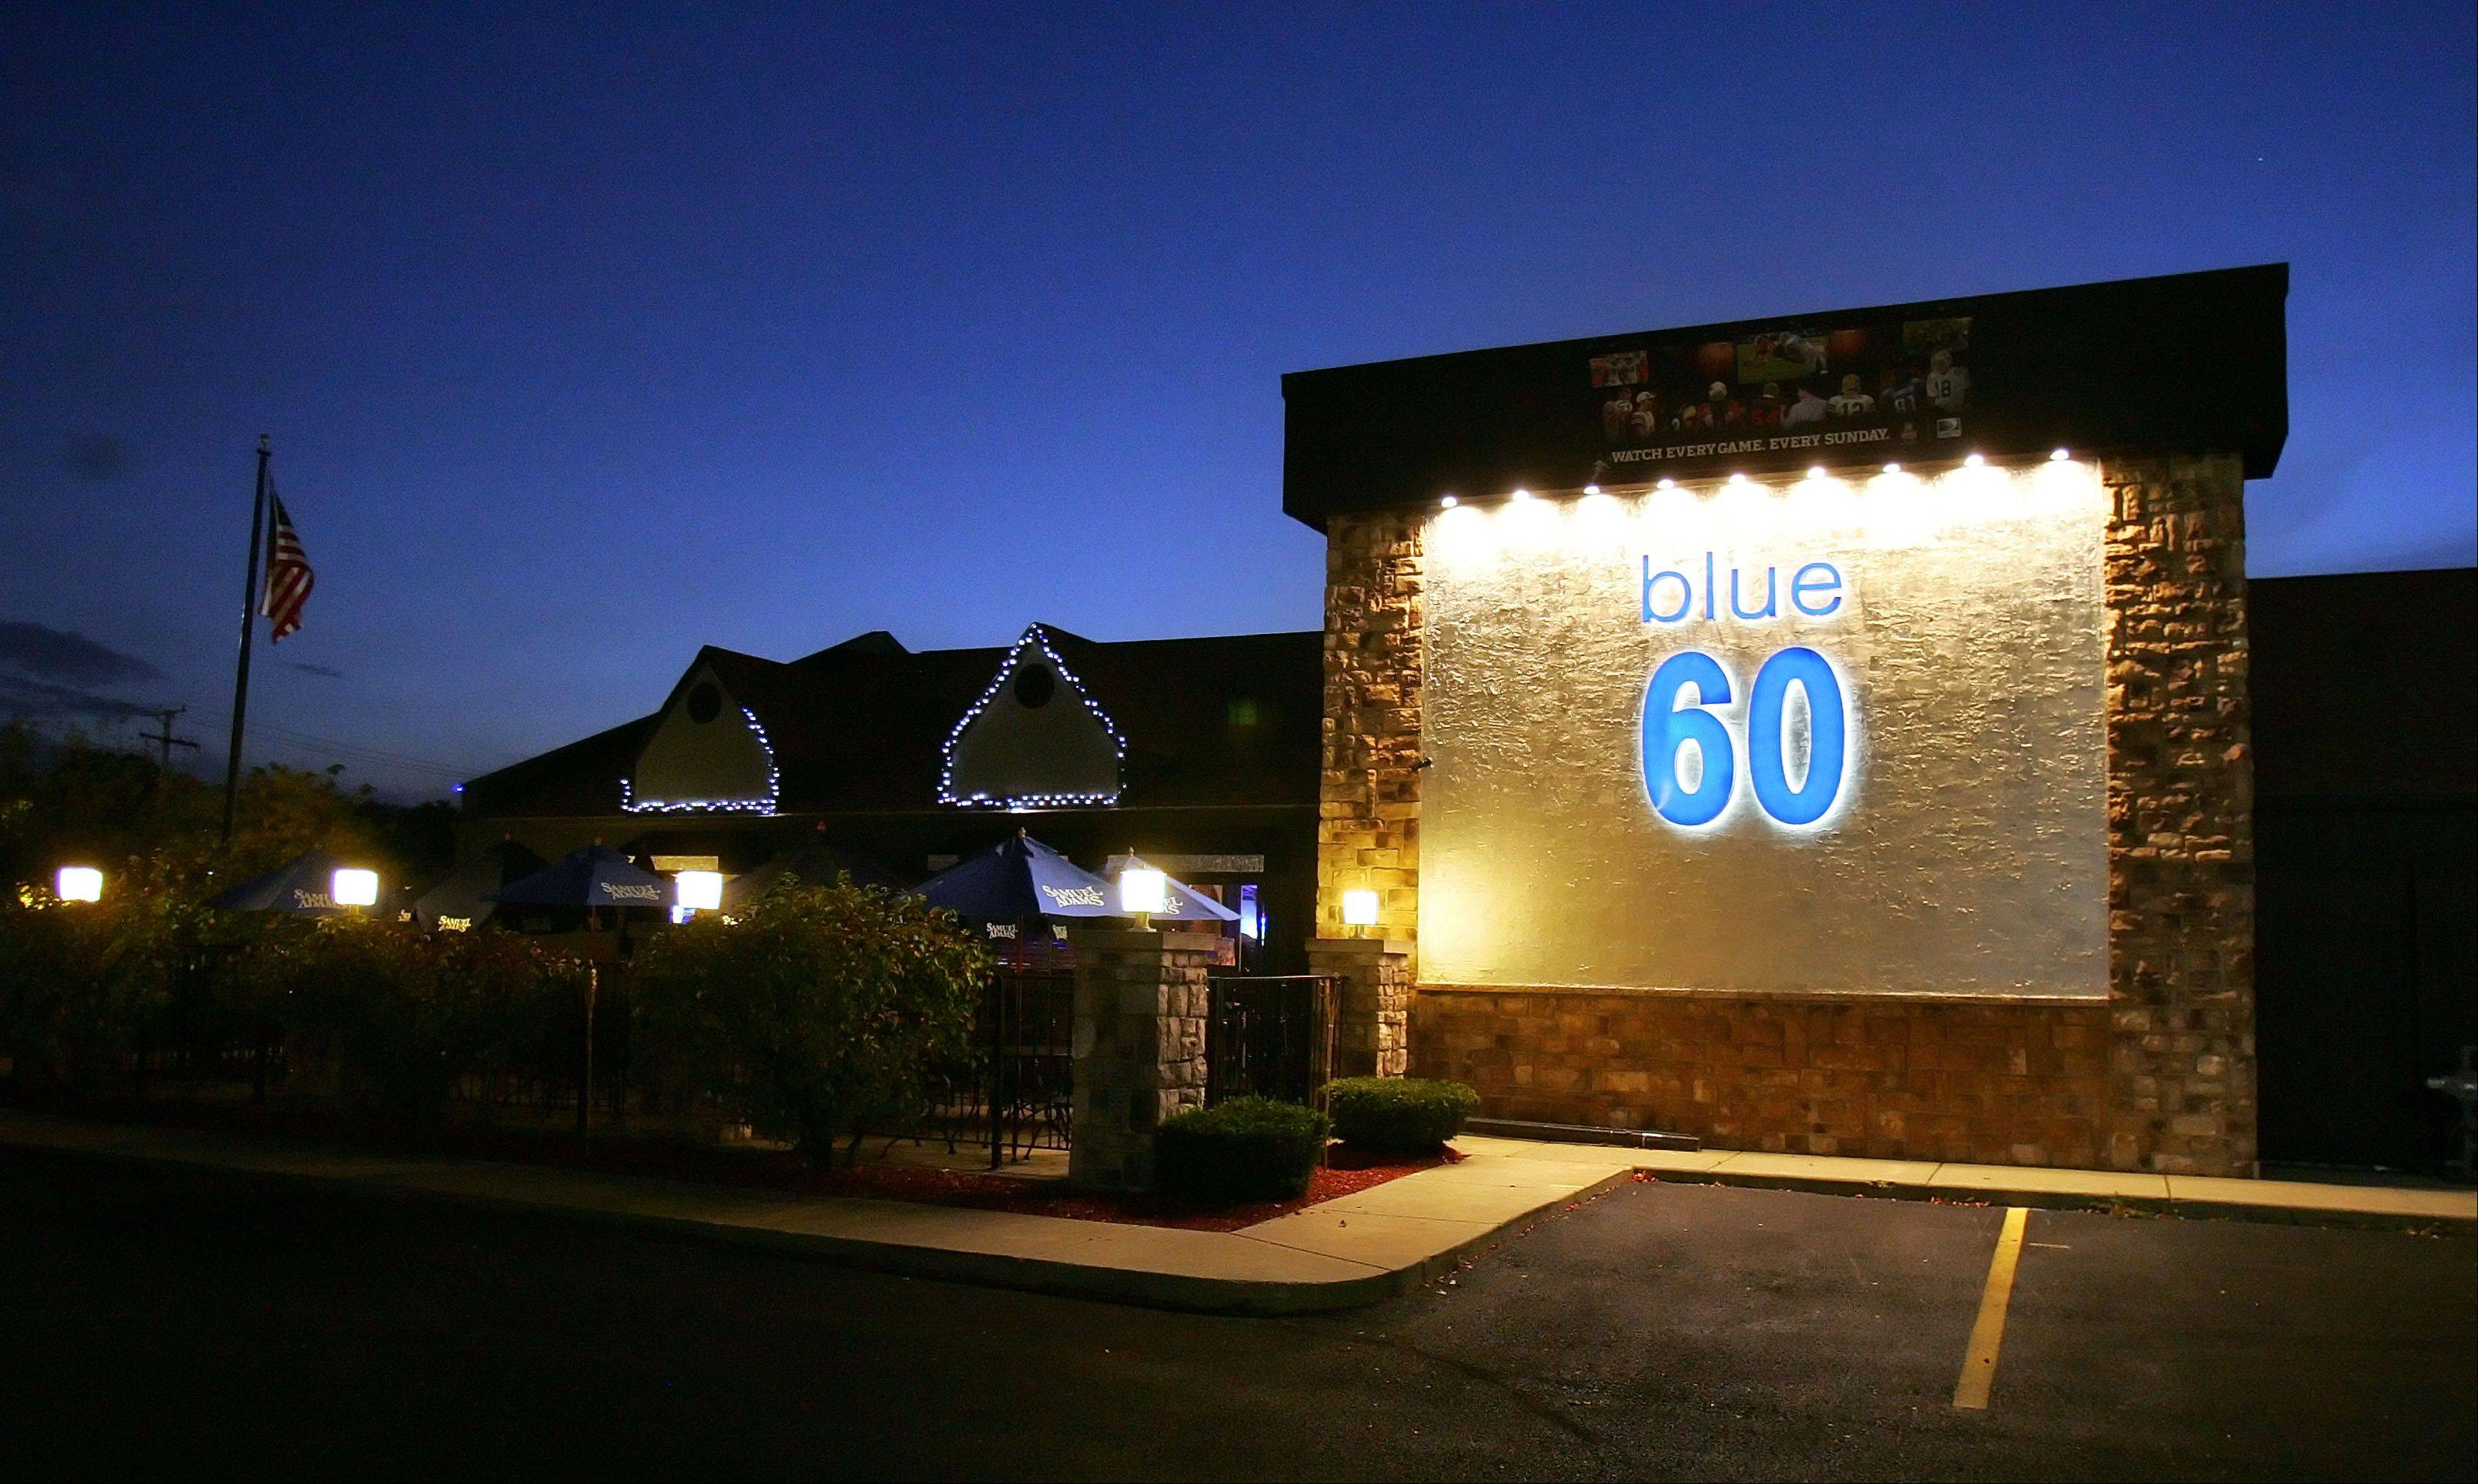 Blue 60 to lose Mundelein liquor license in 60 days